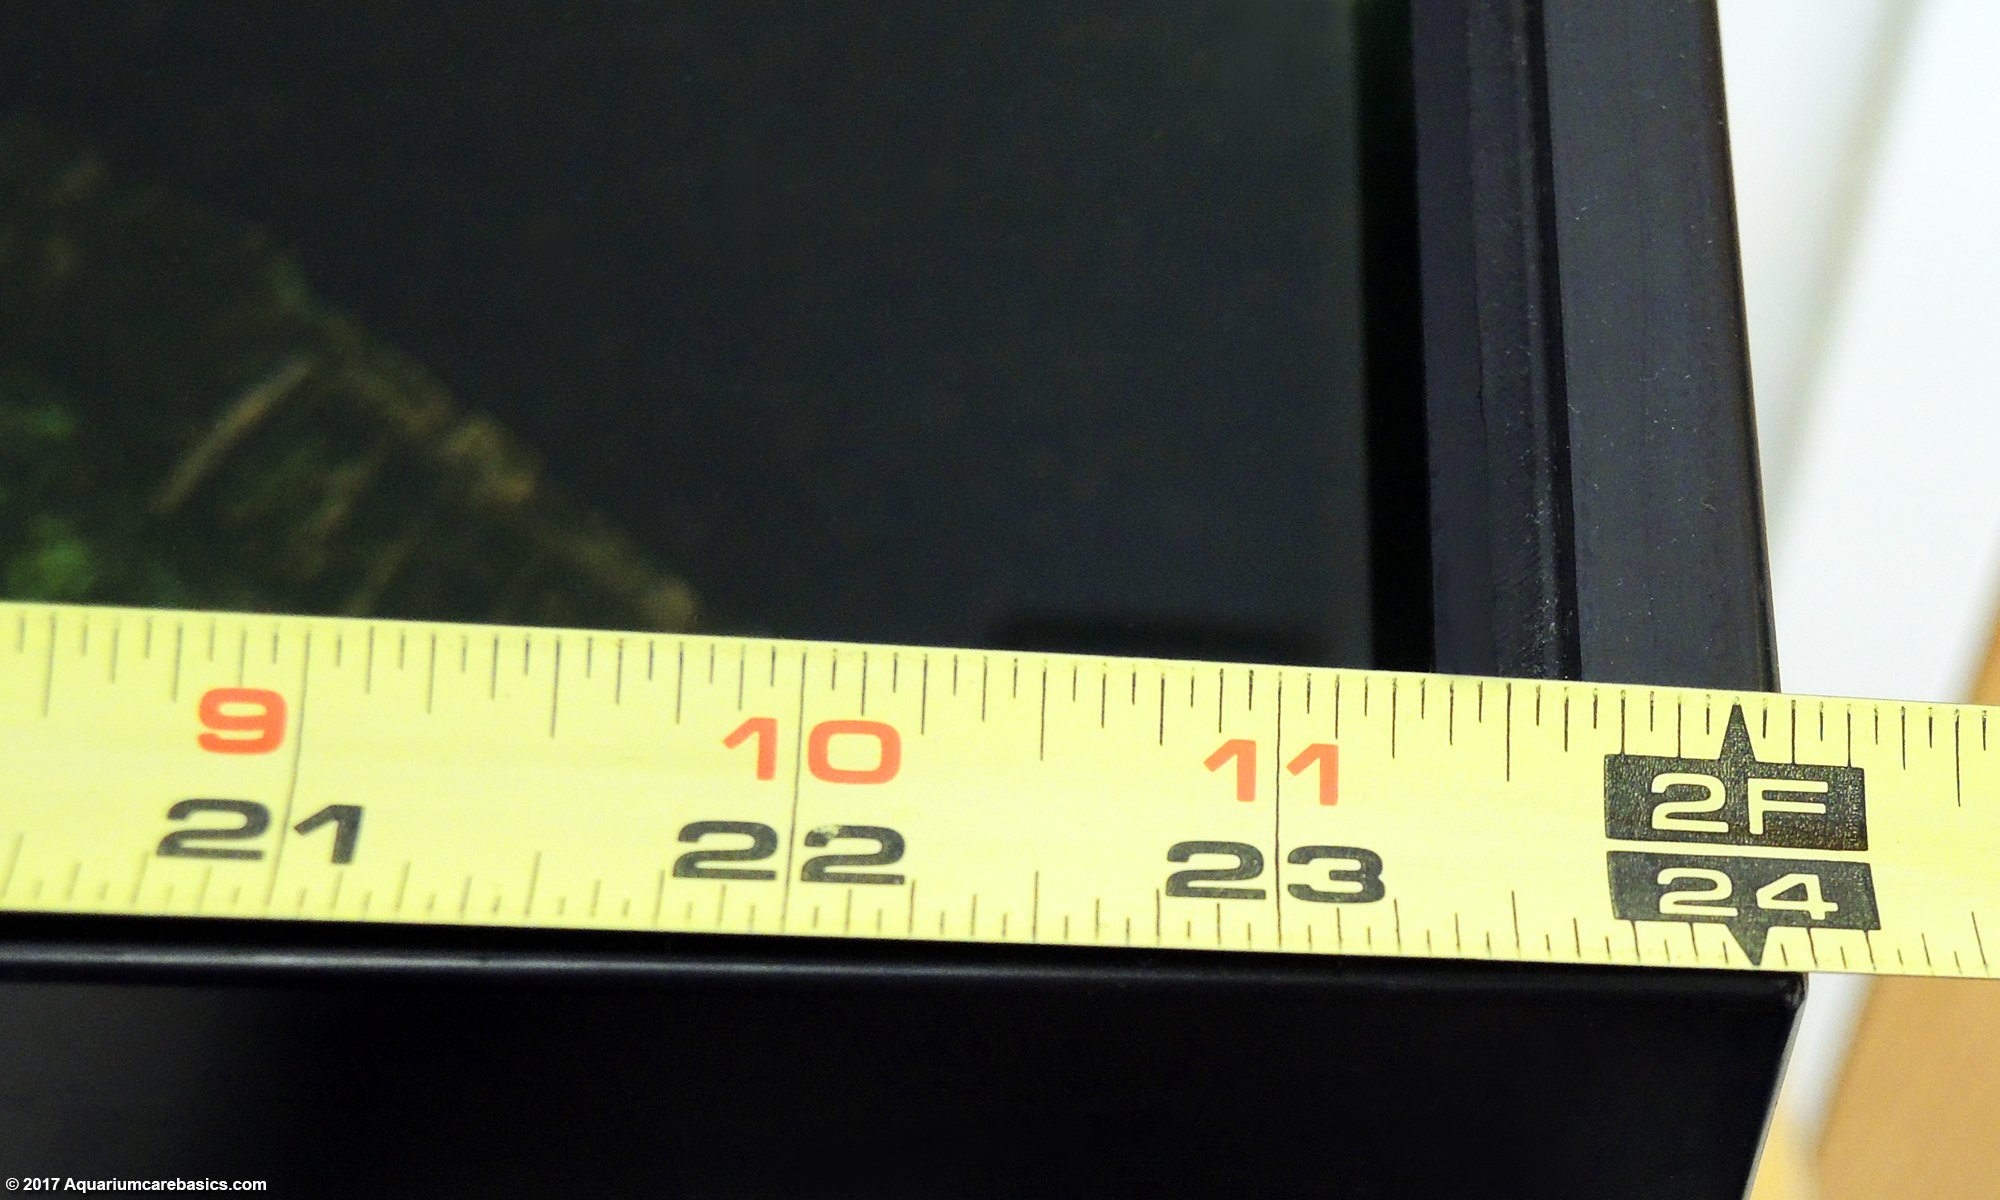 Aquarium Dimensions Measured In Inches